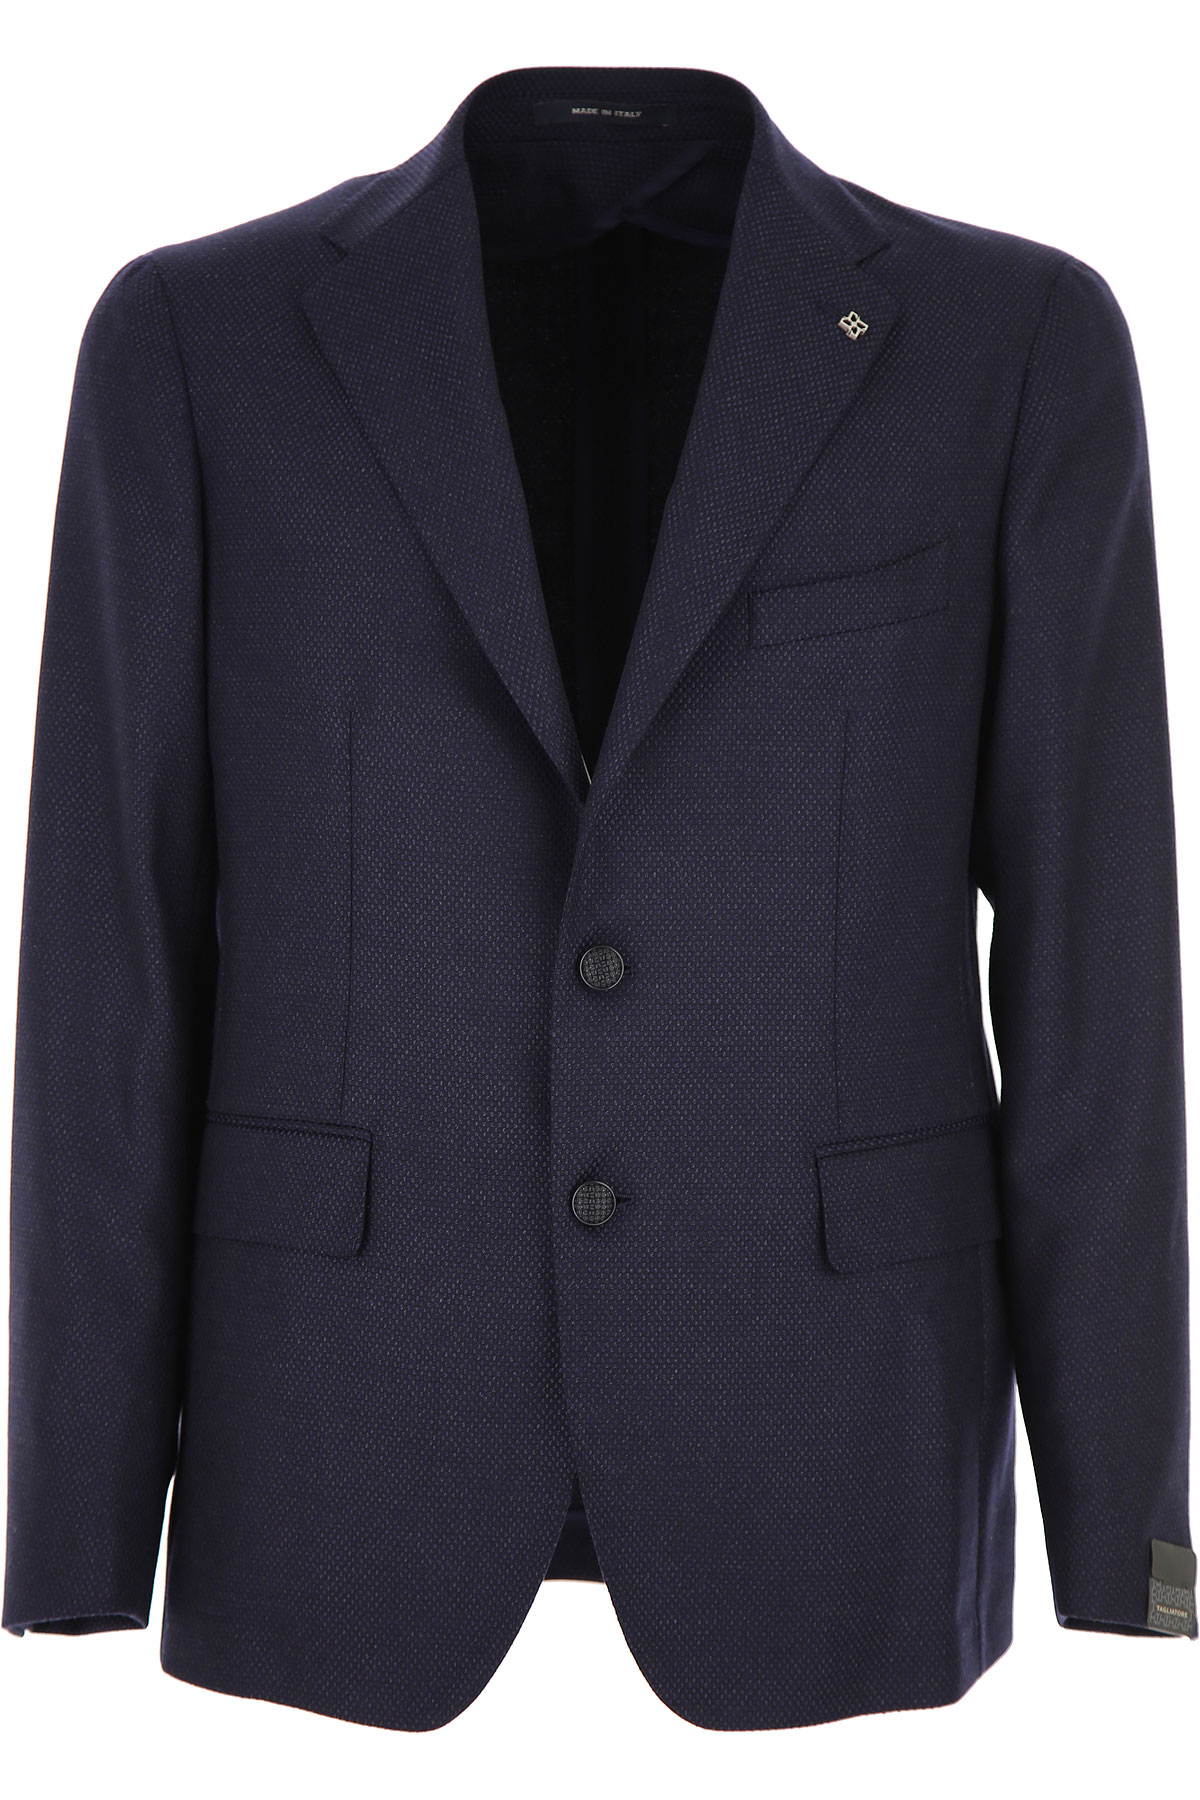 Tagliatore Blazer for Men, Sport Coat, Blue, cupro, 2019, XL XXL